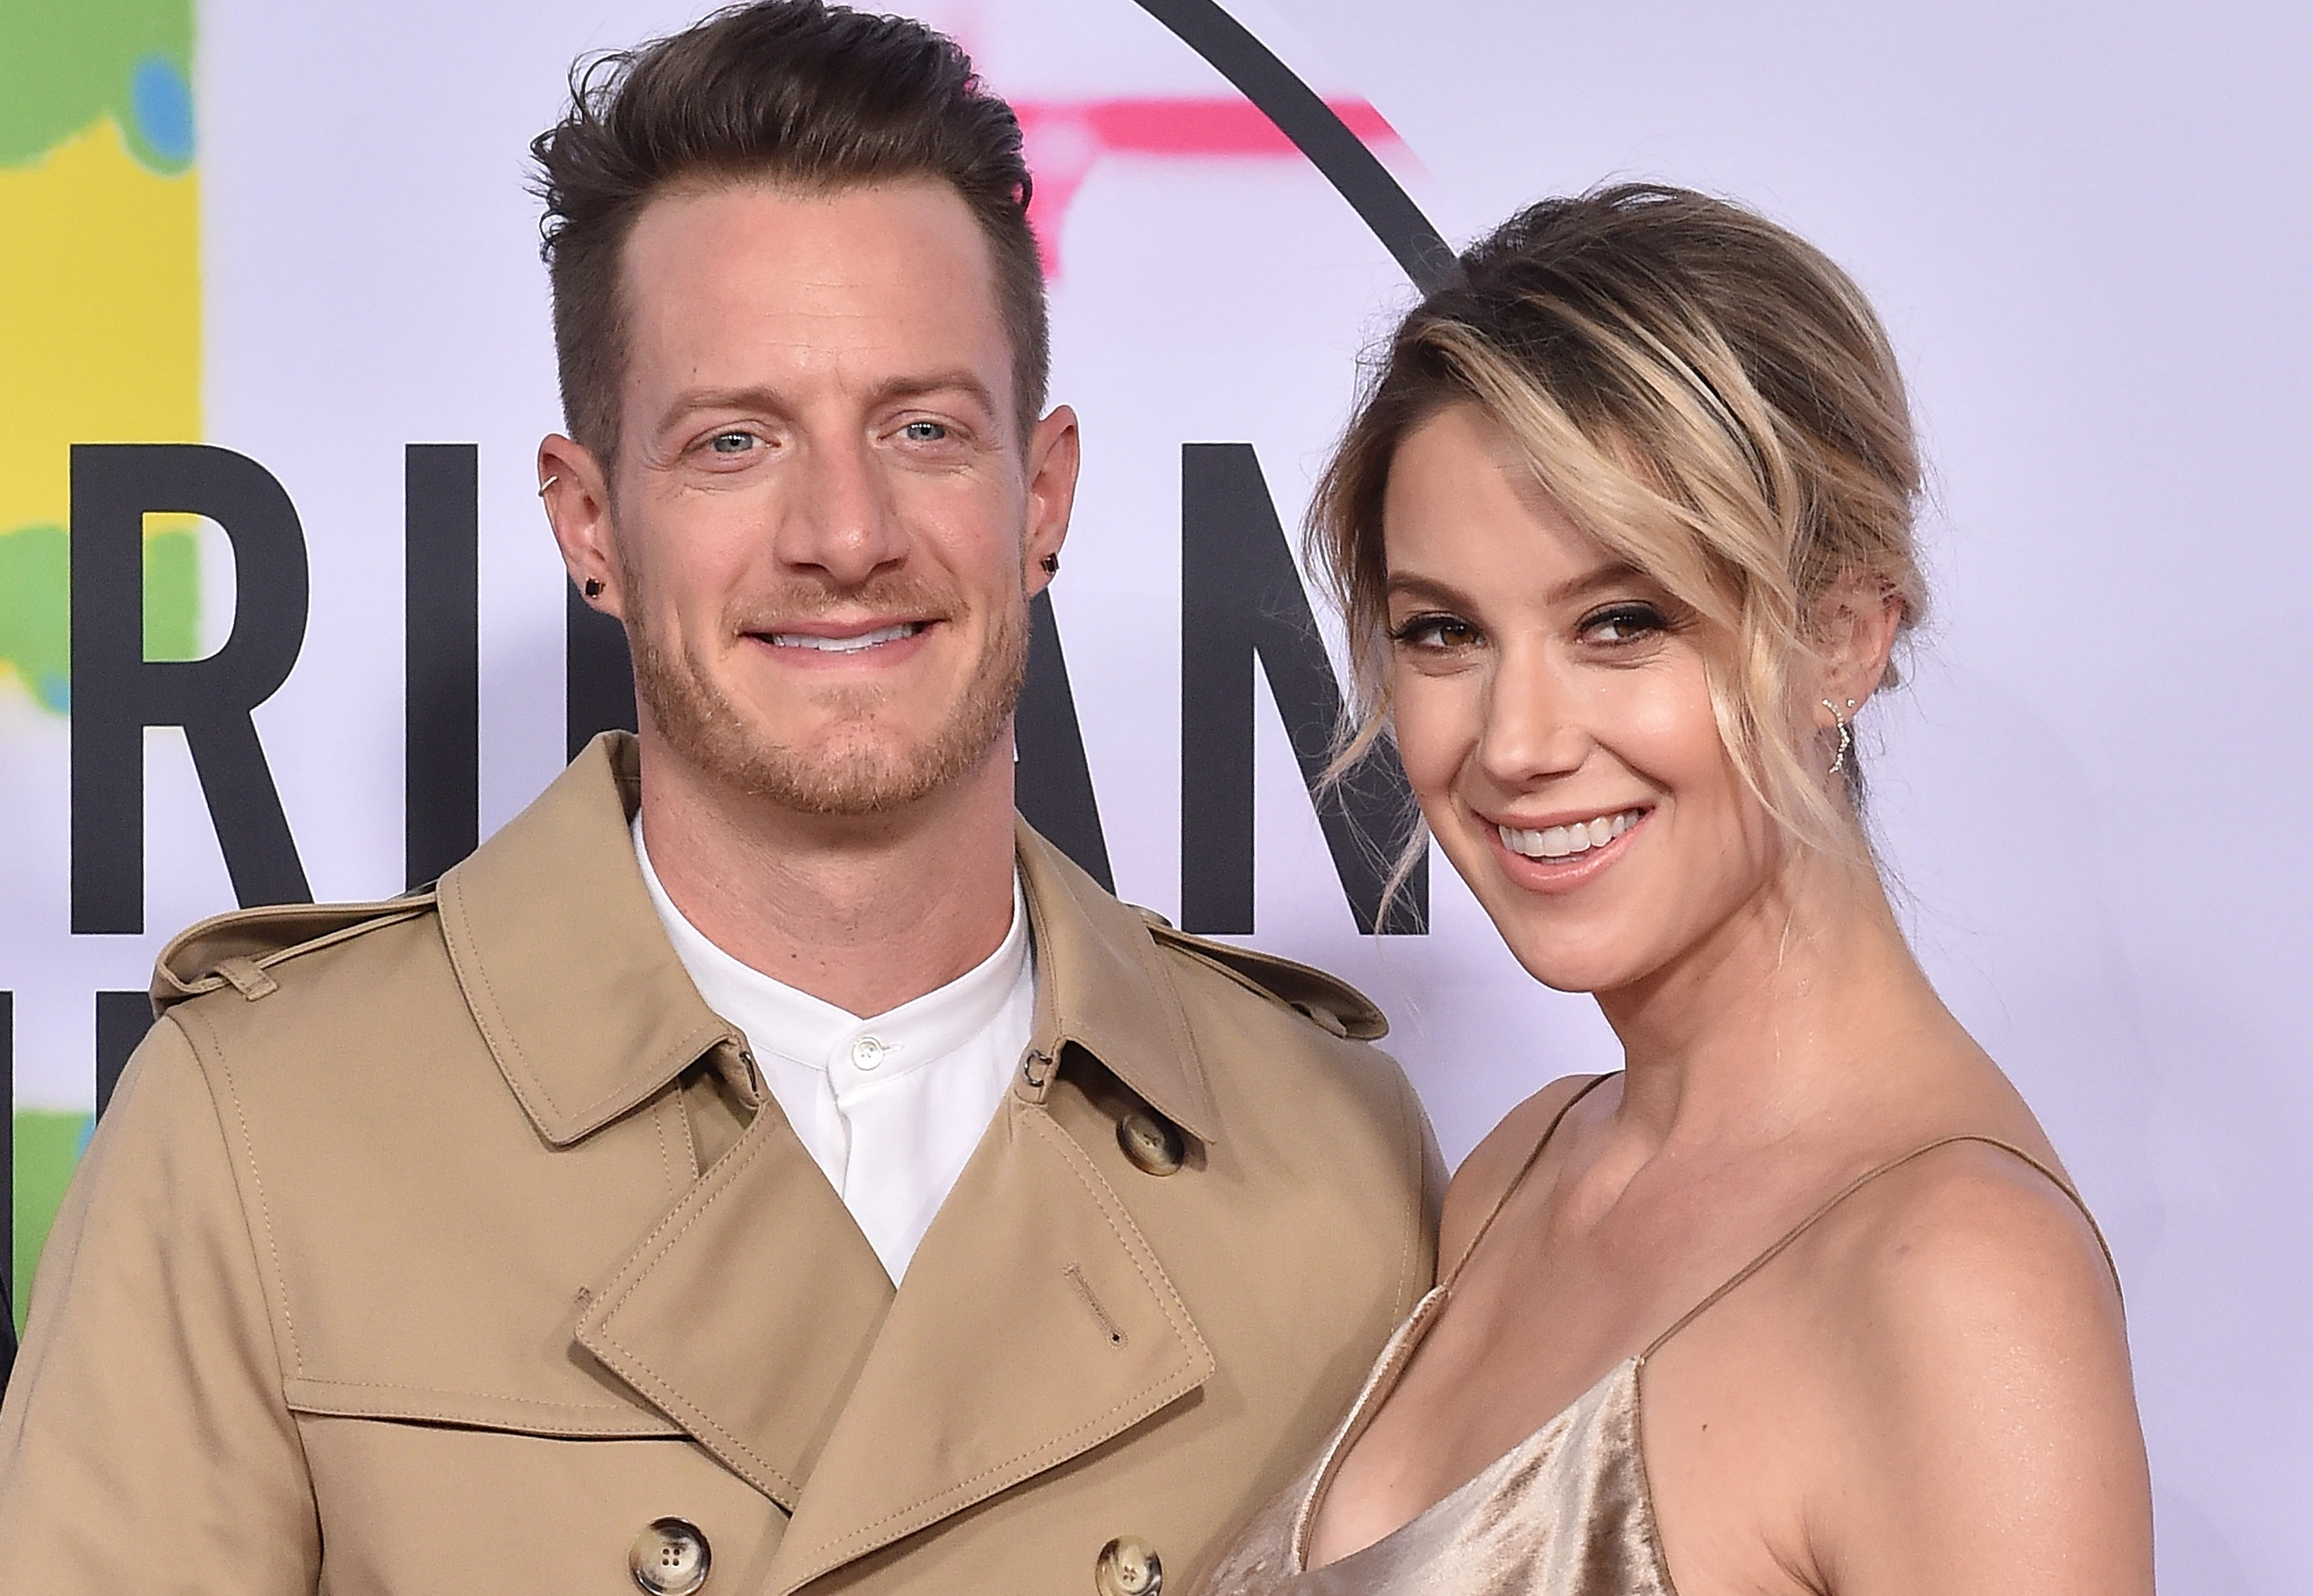 Florida Georgia Line Singer Tyler Hubbard Welcomes Baby Girl